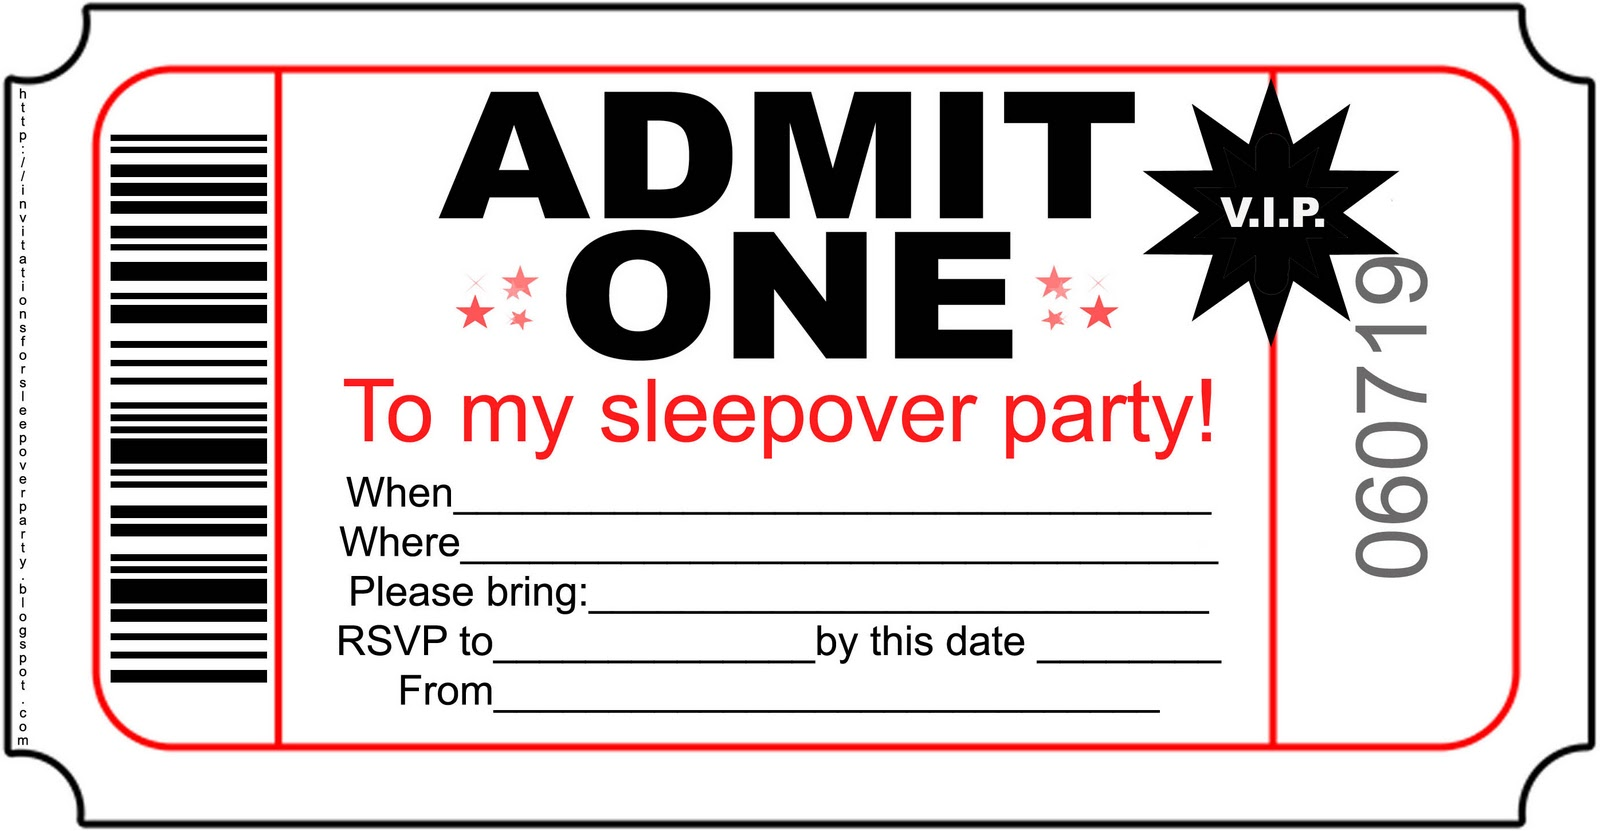 birthday sleepover clipart ; Sleepover-party-invitations-and-get-ideas-how-to-make-interesting-party-invitation-appearance-1